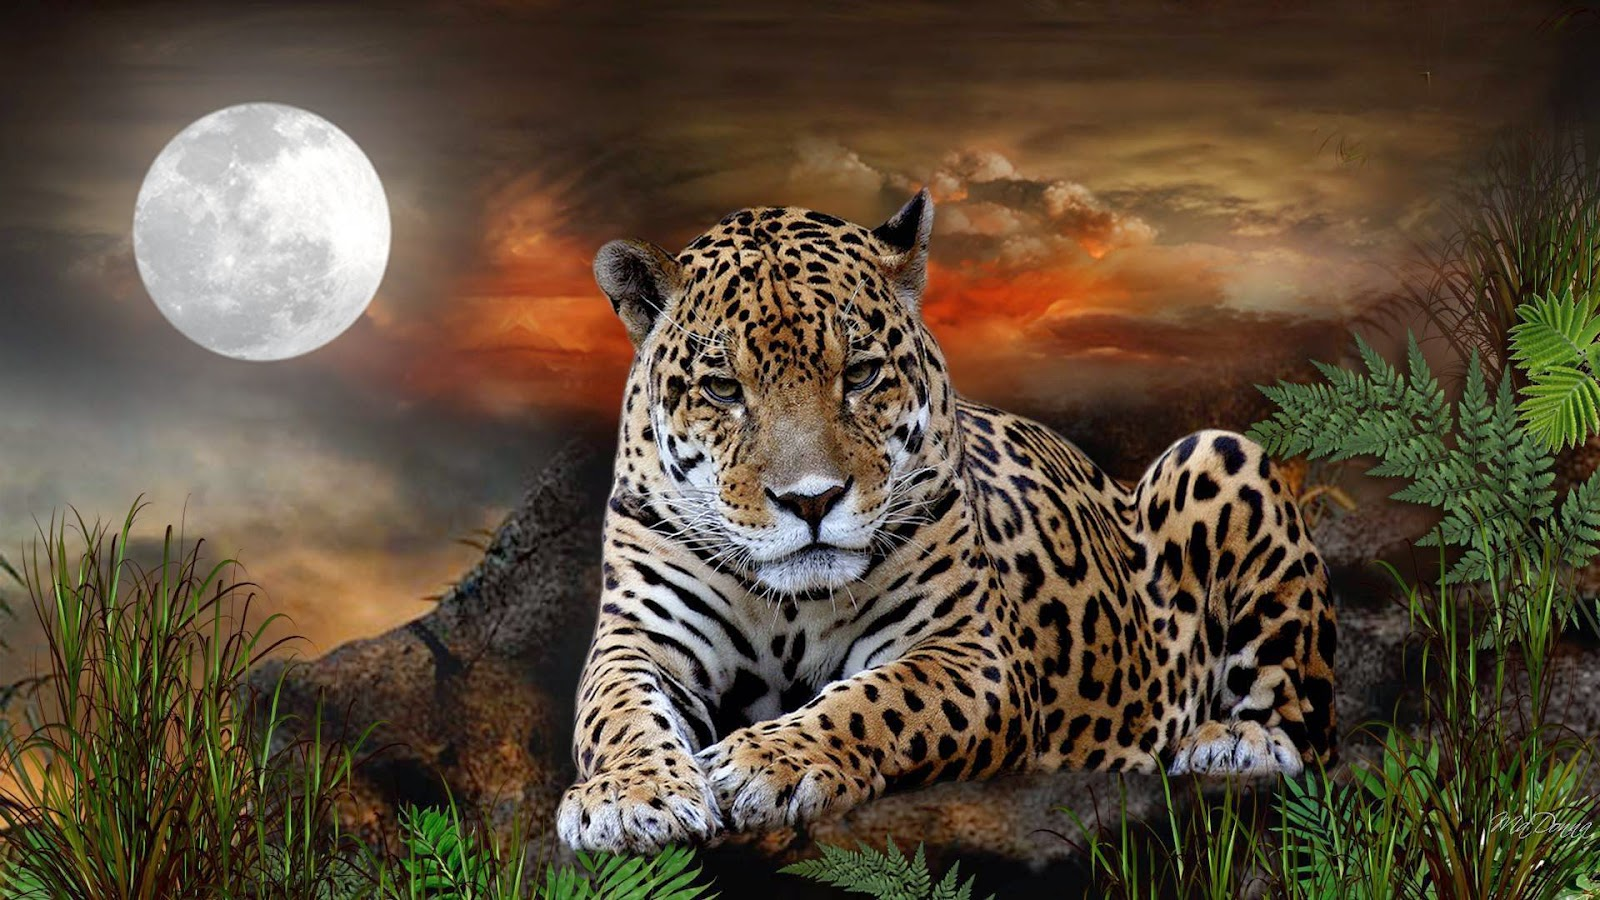 Jaguar Hd Desktop Background